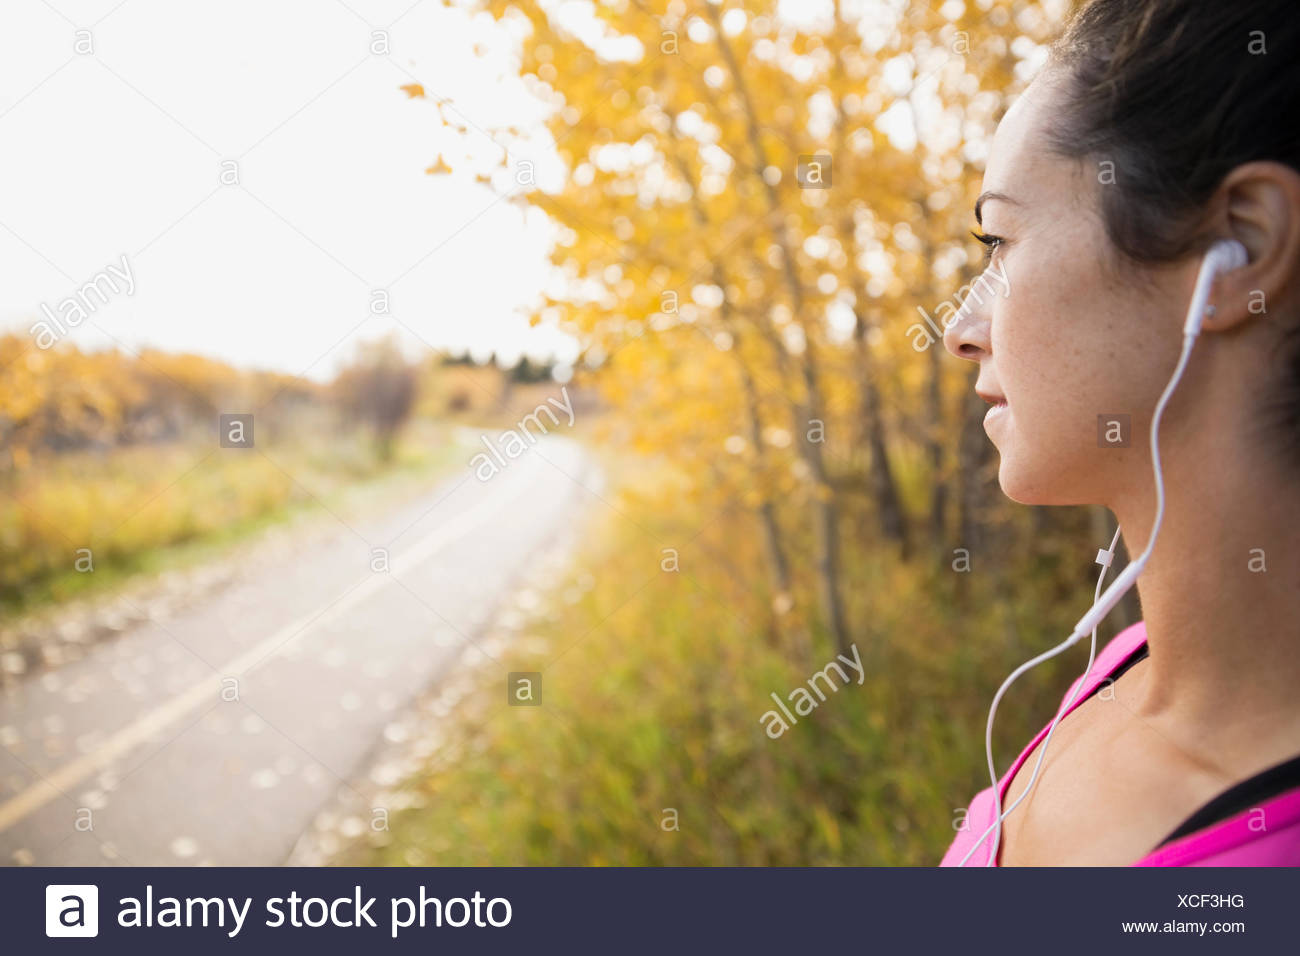 Jogger with headphones looking at autumn path - Stock Image